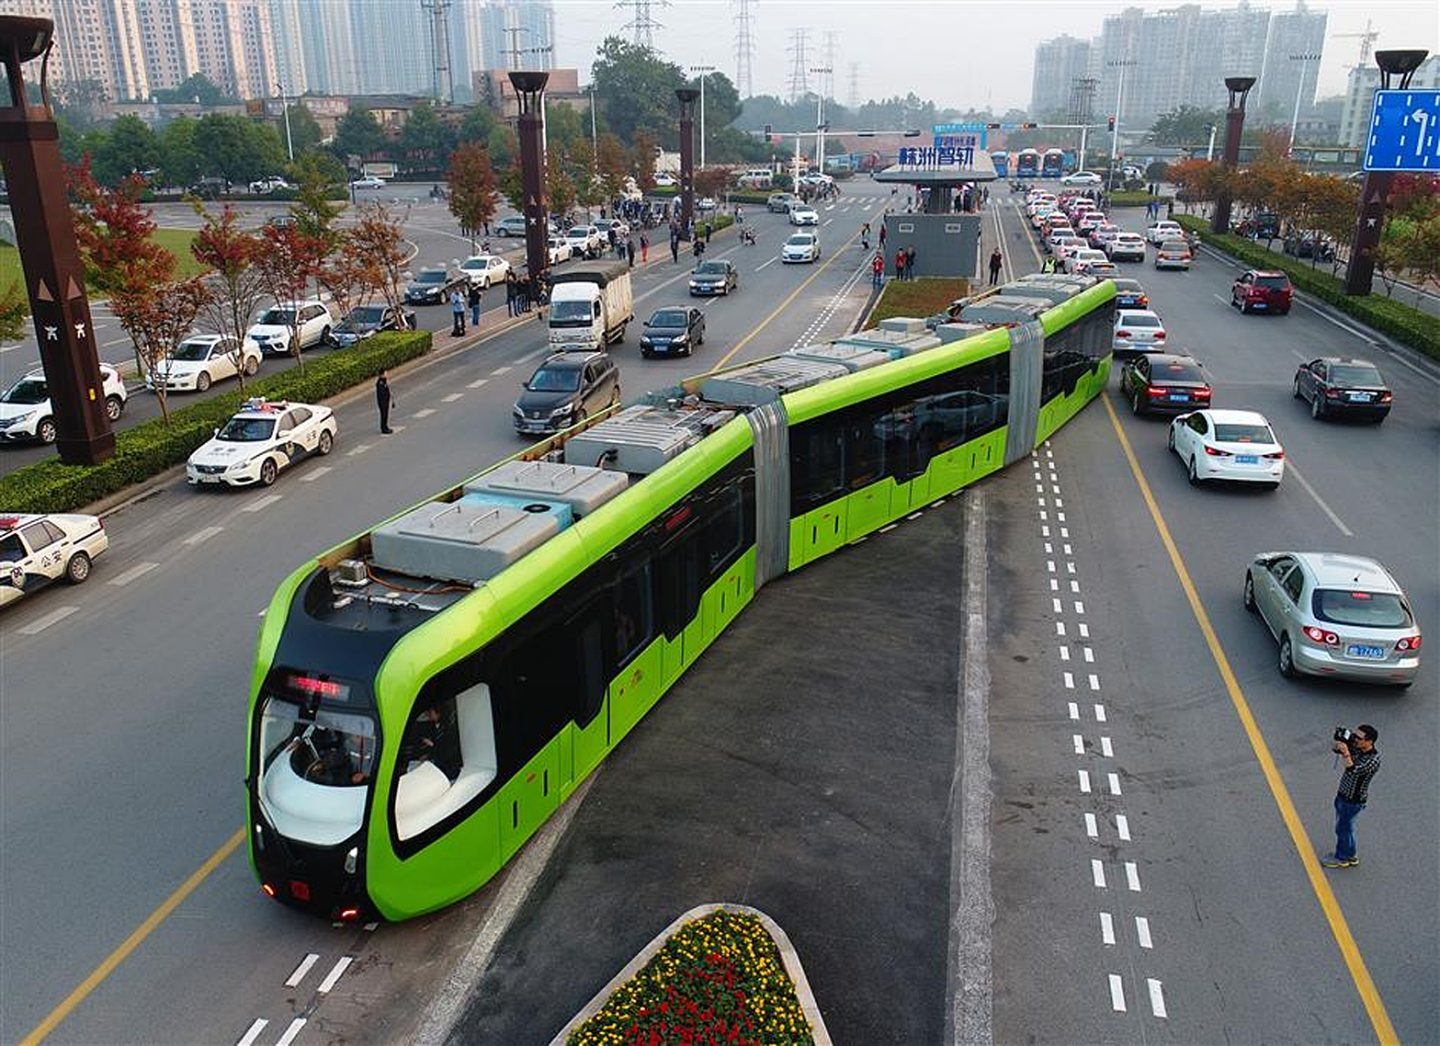 Trams without rails